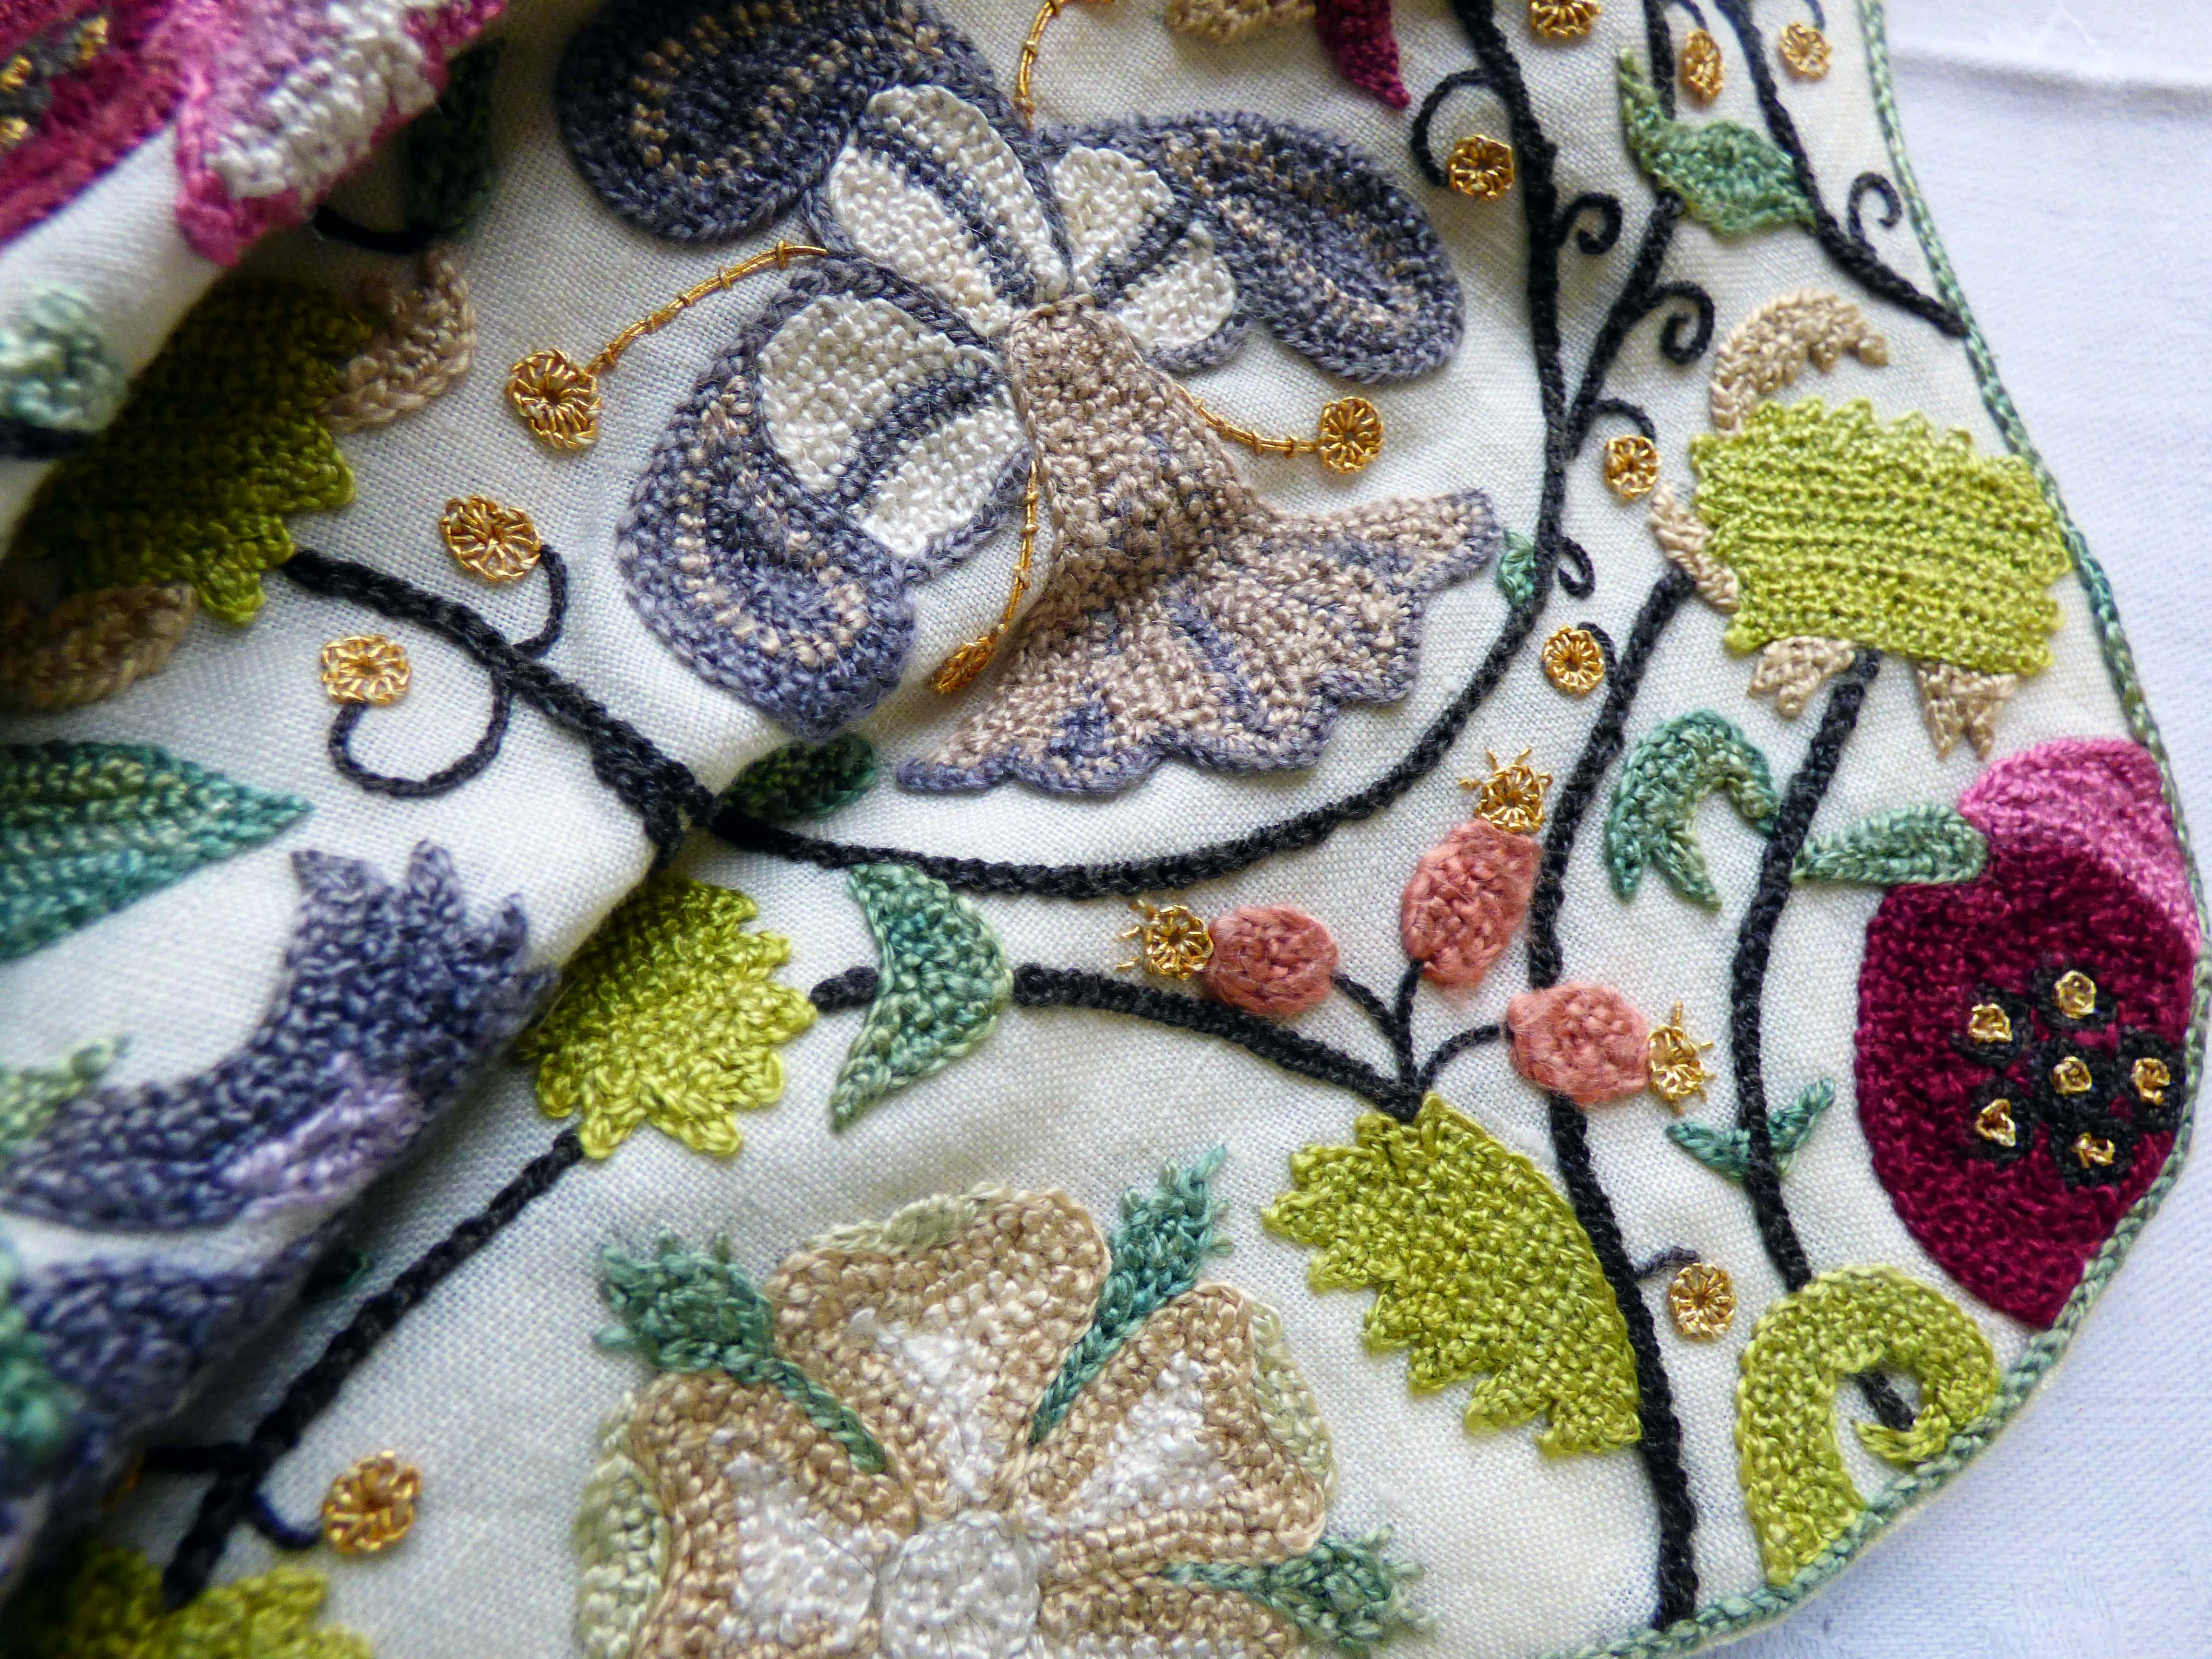 close up of embroidery by Carolyn  Richardson, Embroidery of the Jacobean era, Jan 2019